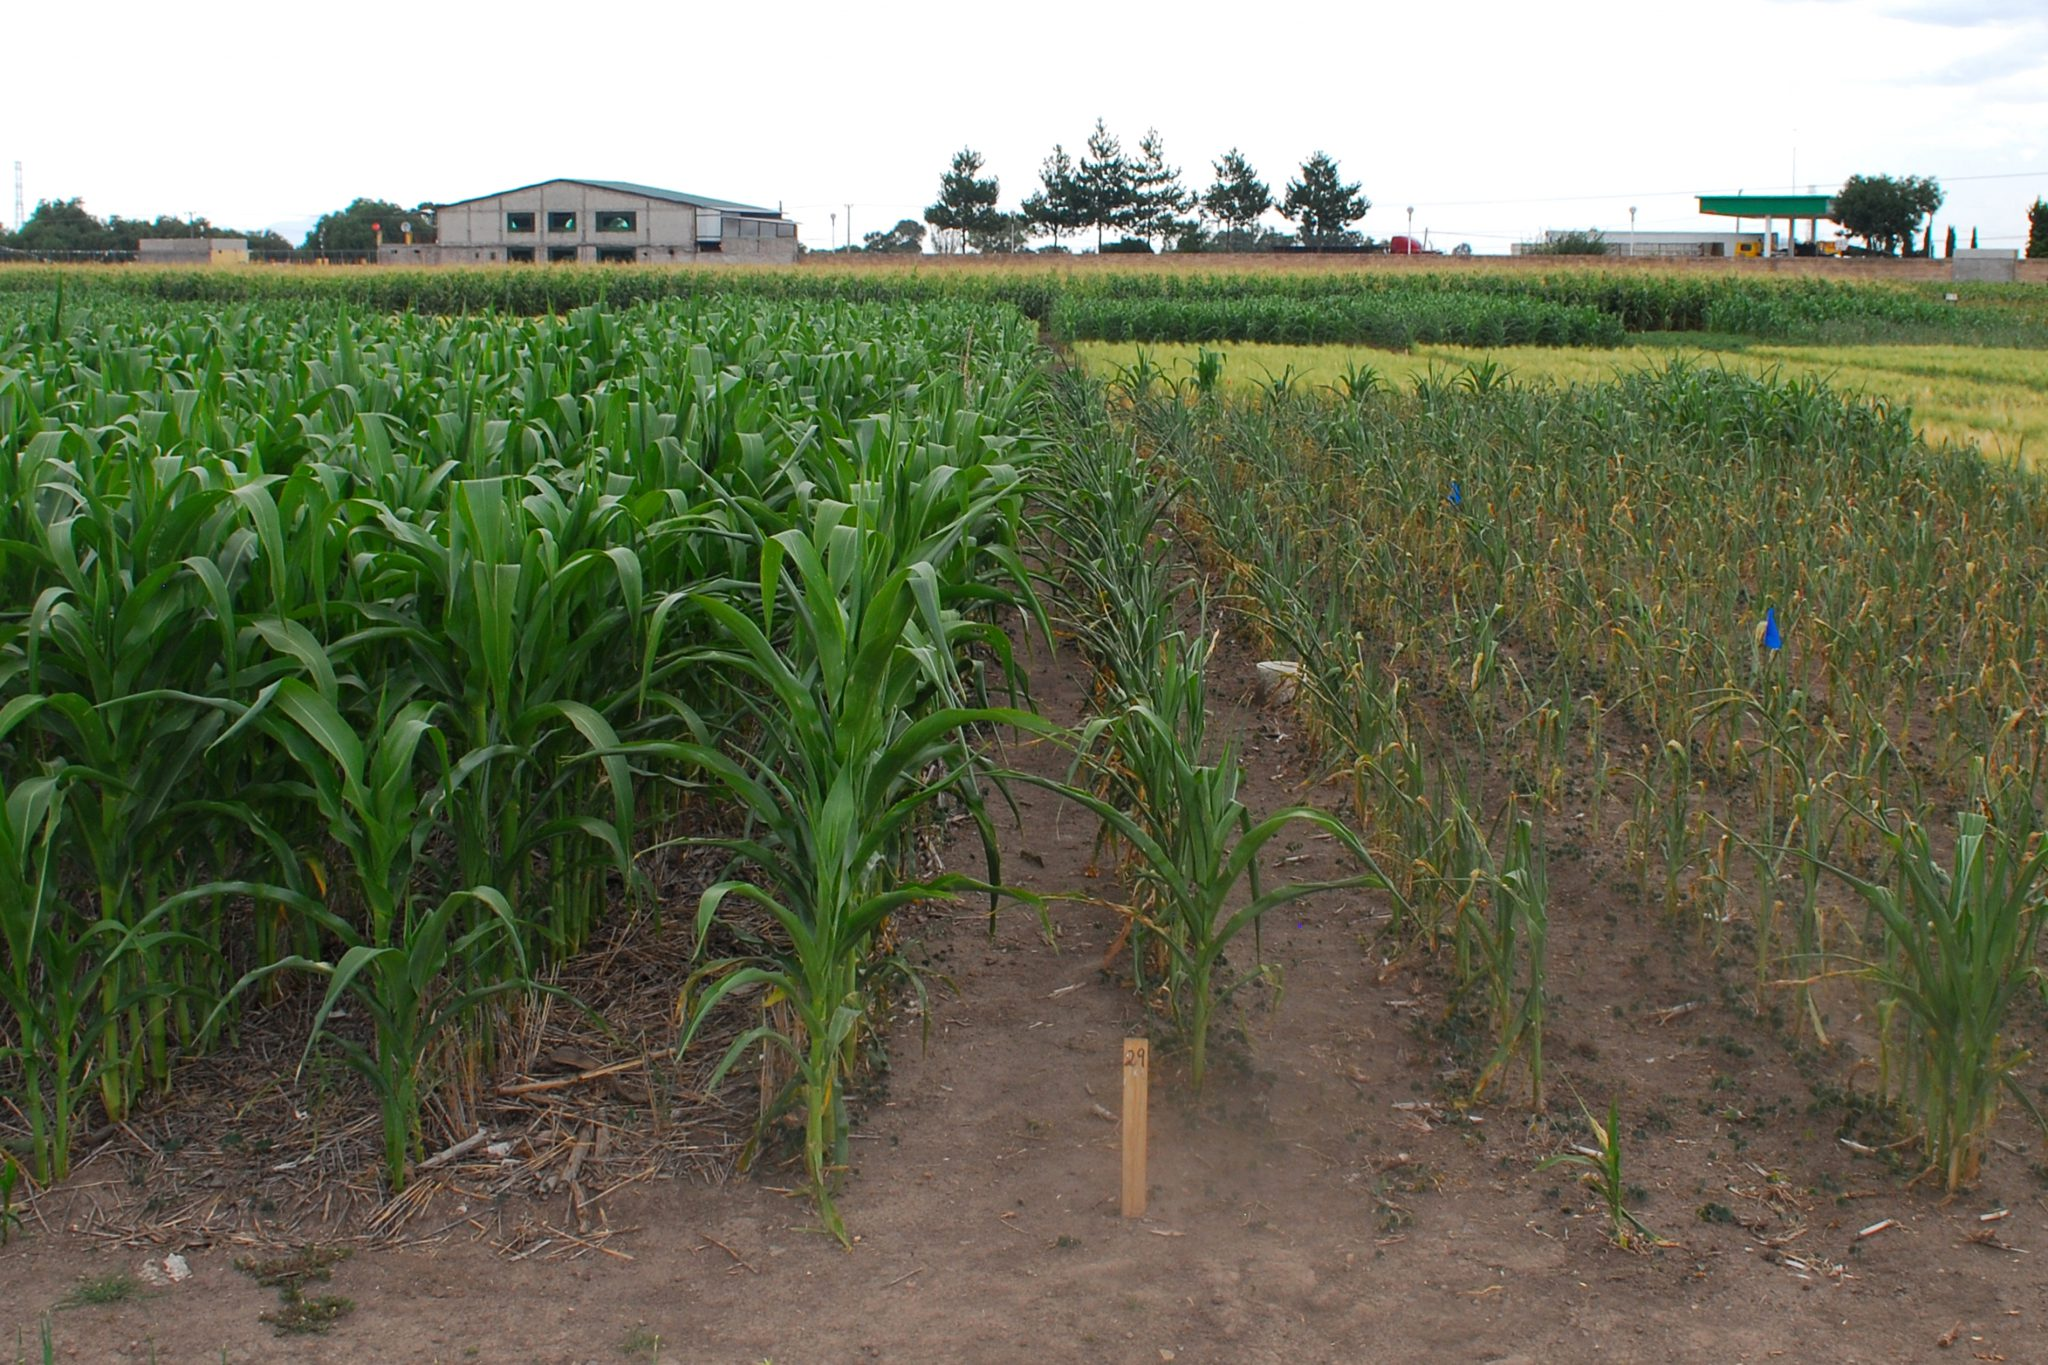 Maize grown in rotation with wheat